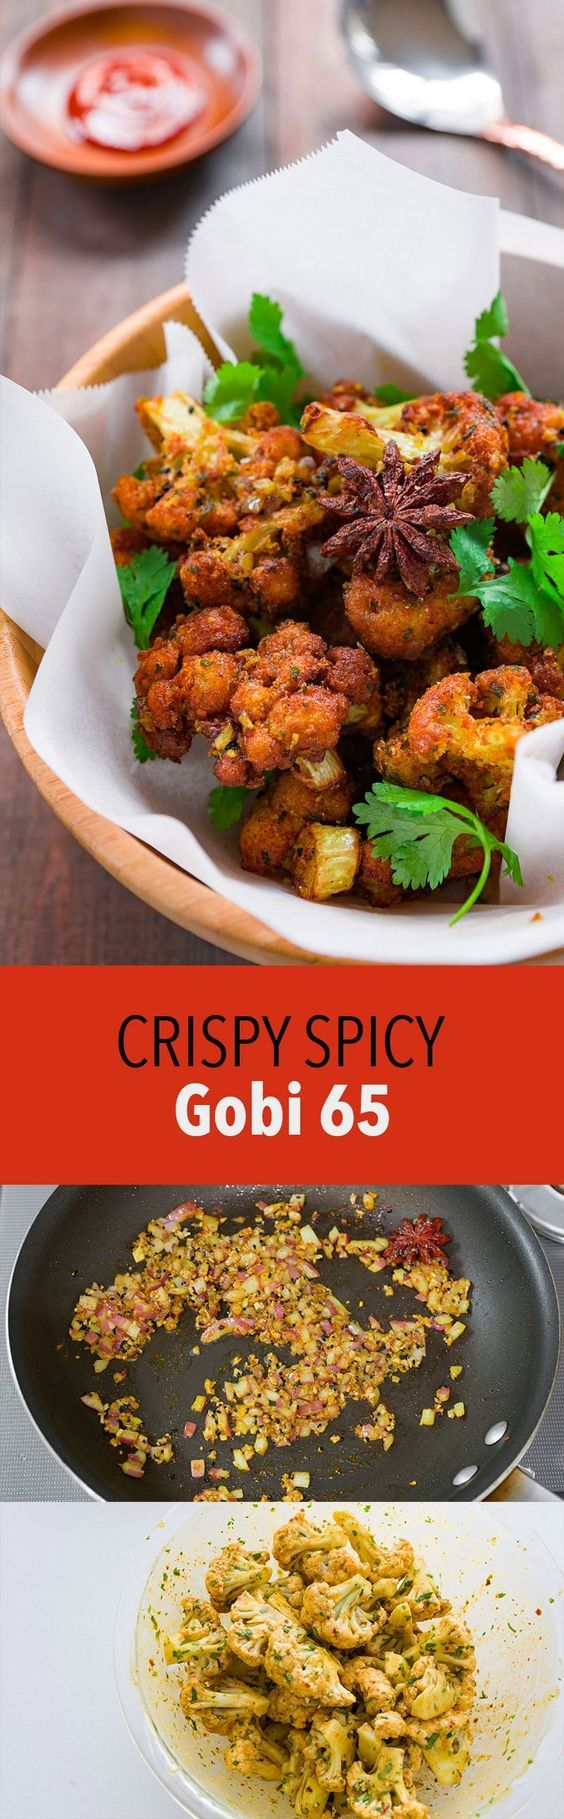 Gobi 65 (Cauliflower 65) is the consummate bar-snack of Chennai with crisp florets of cauliflower tossed with tempered spices and aromatics.